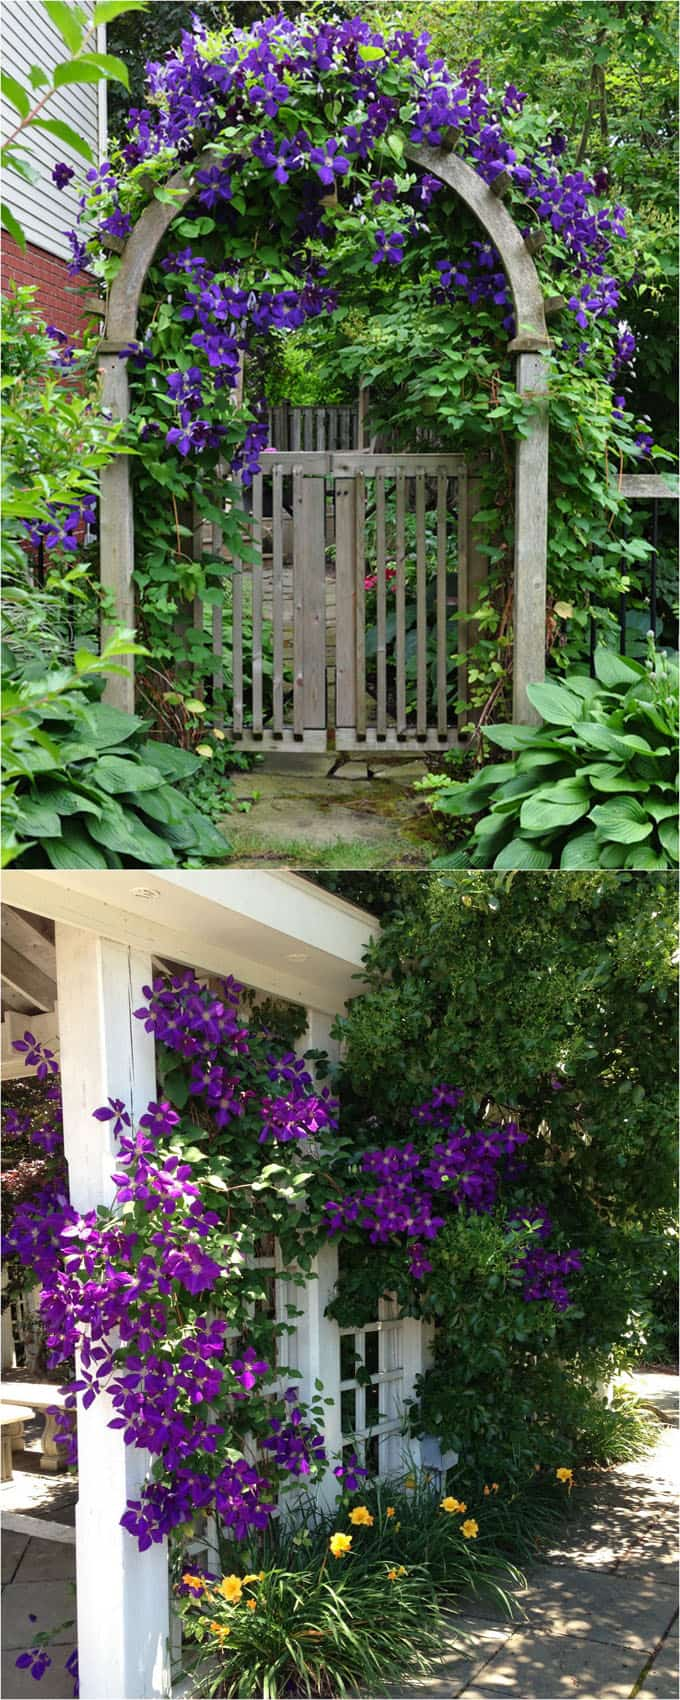 Clematis Is A Vigorous Vine Covered With Profusion Of Large Flowers In Almost Any Color You Desire Varieties That Bloom At Diffe Times Year